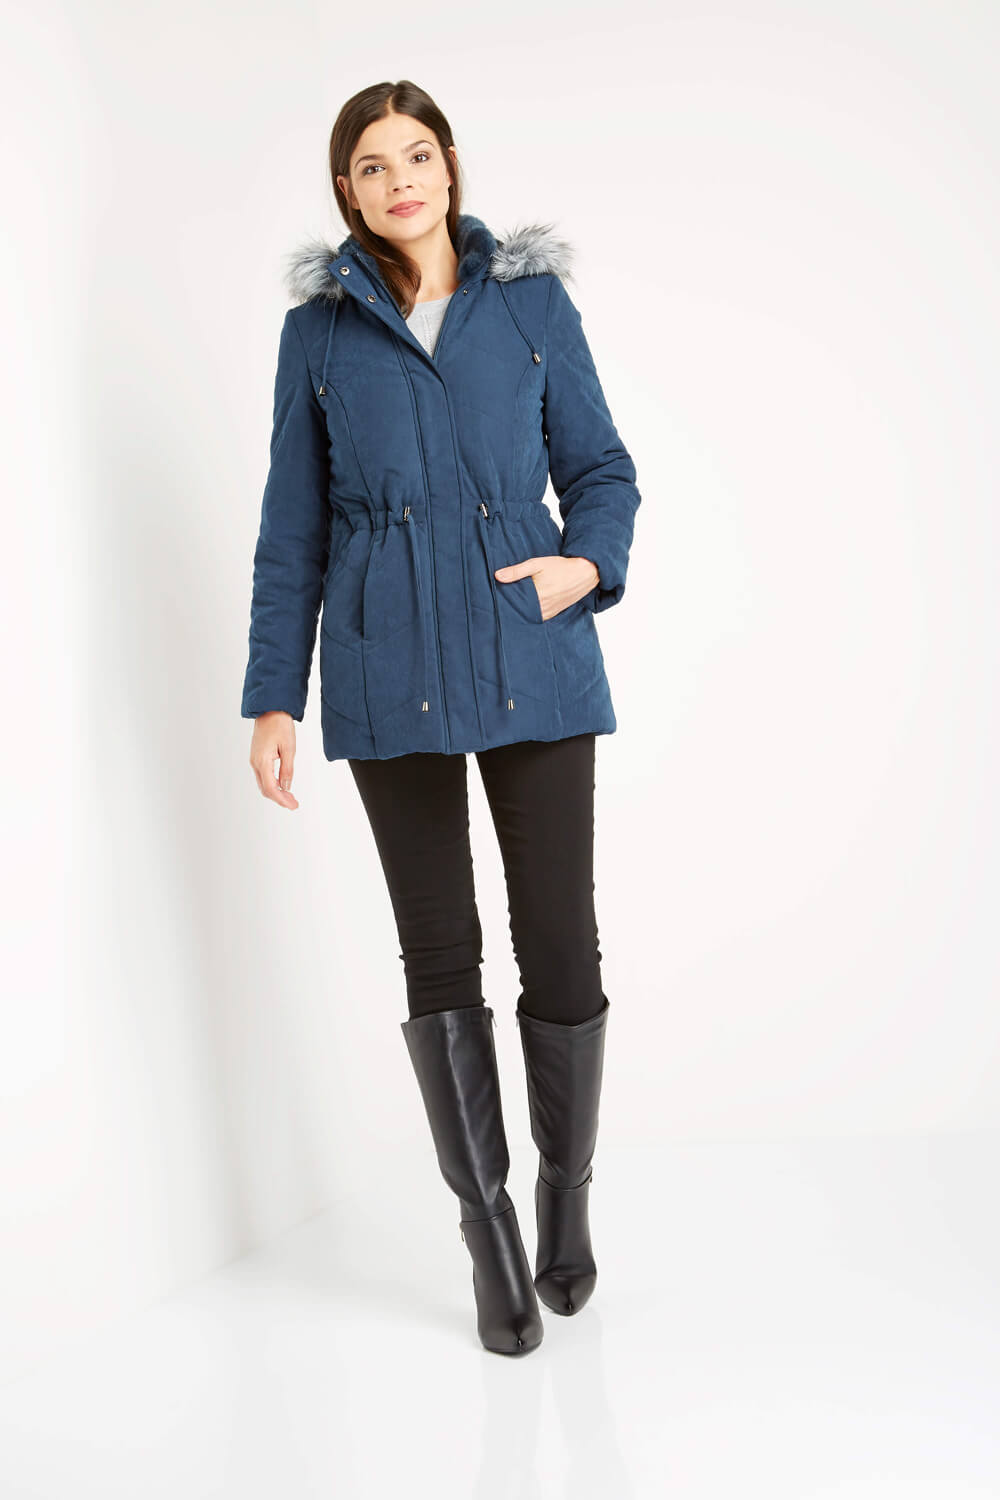 Roman-Originals-Women-039-s-Blue-Quilted-Parka-Coat-with-Hood-Sizes-10-20 thumbnail 16